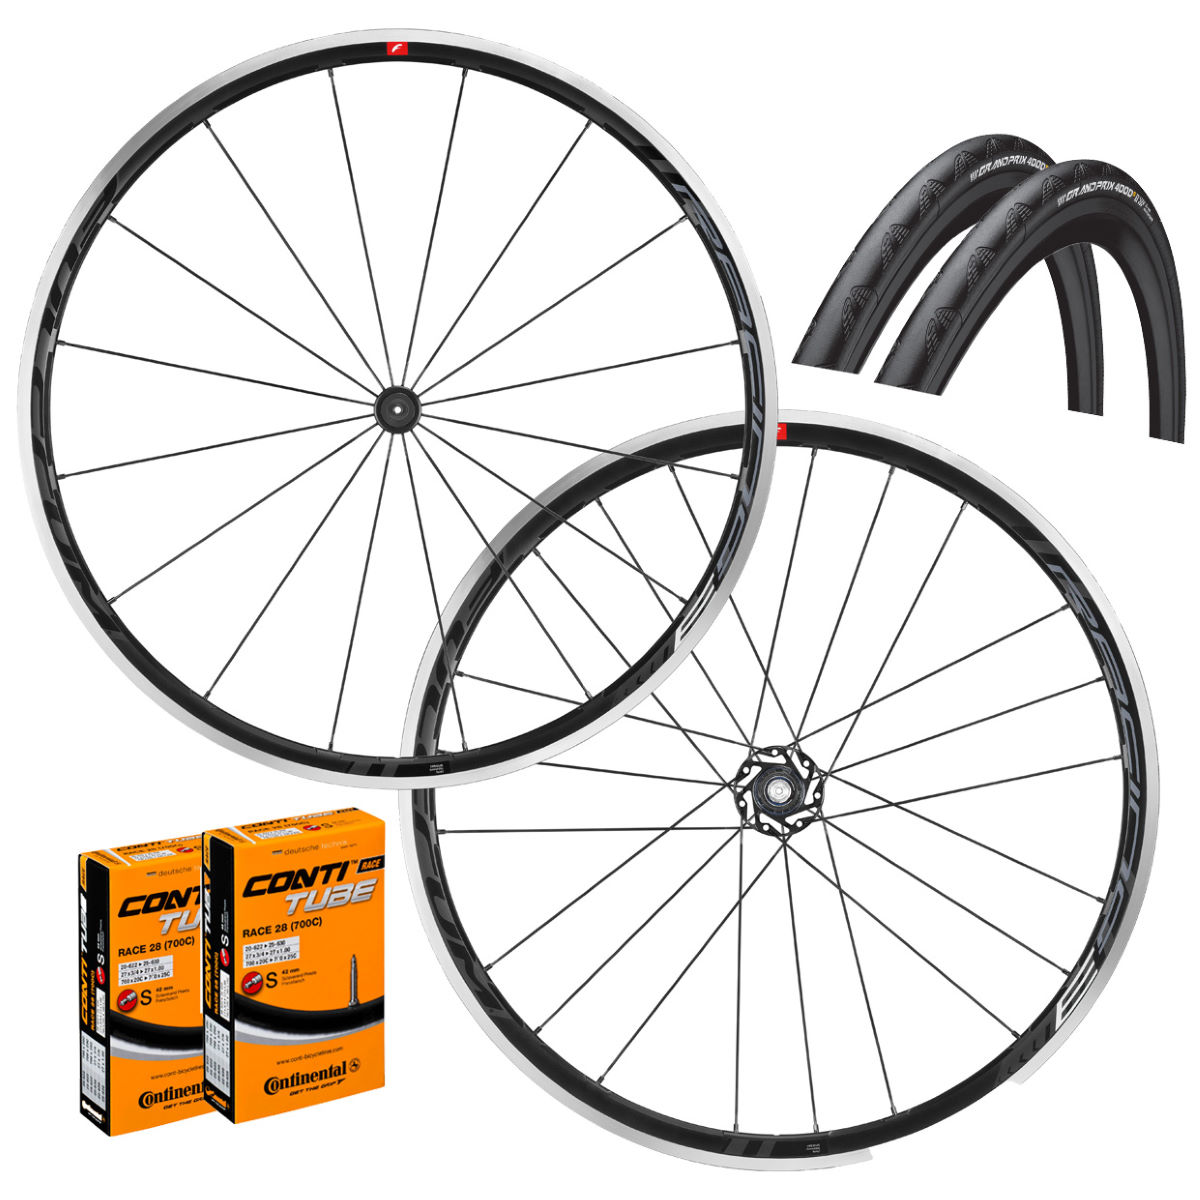 Fulcrum Racing 3 C17 Clincher Wheels GP4000s II Bundle - Juegos de ruedas